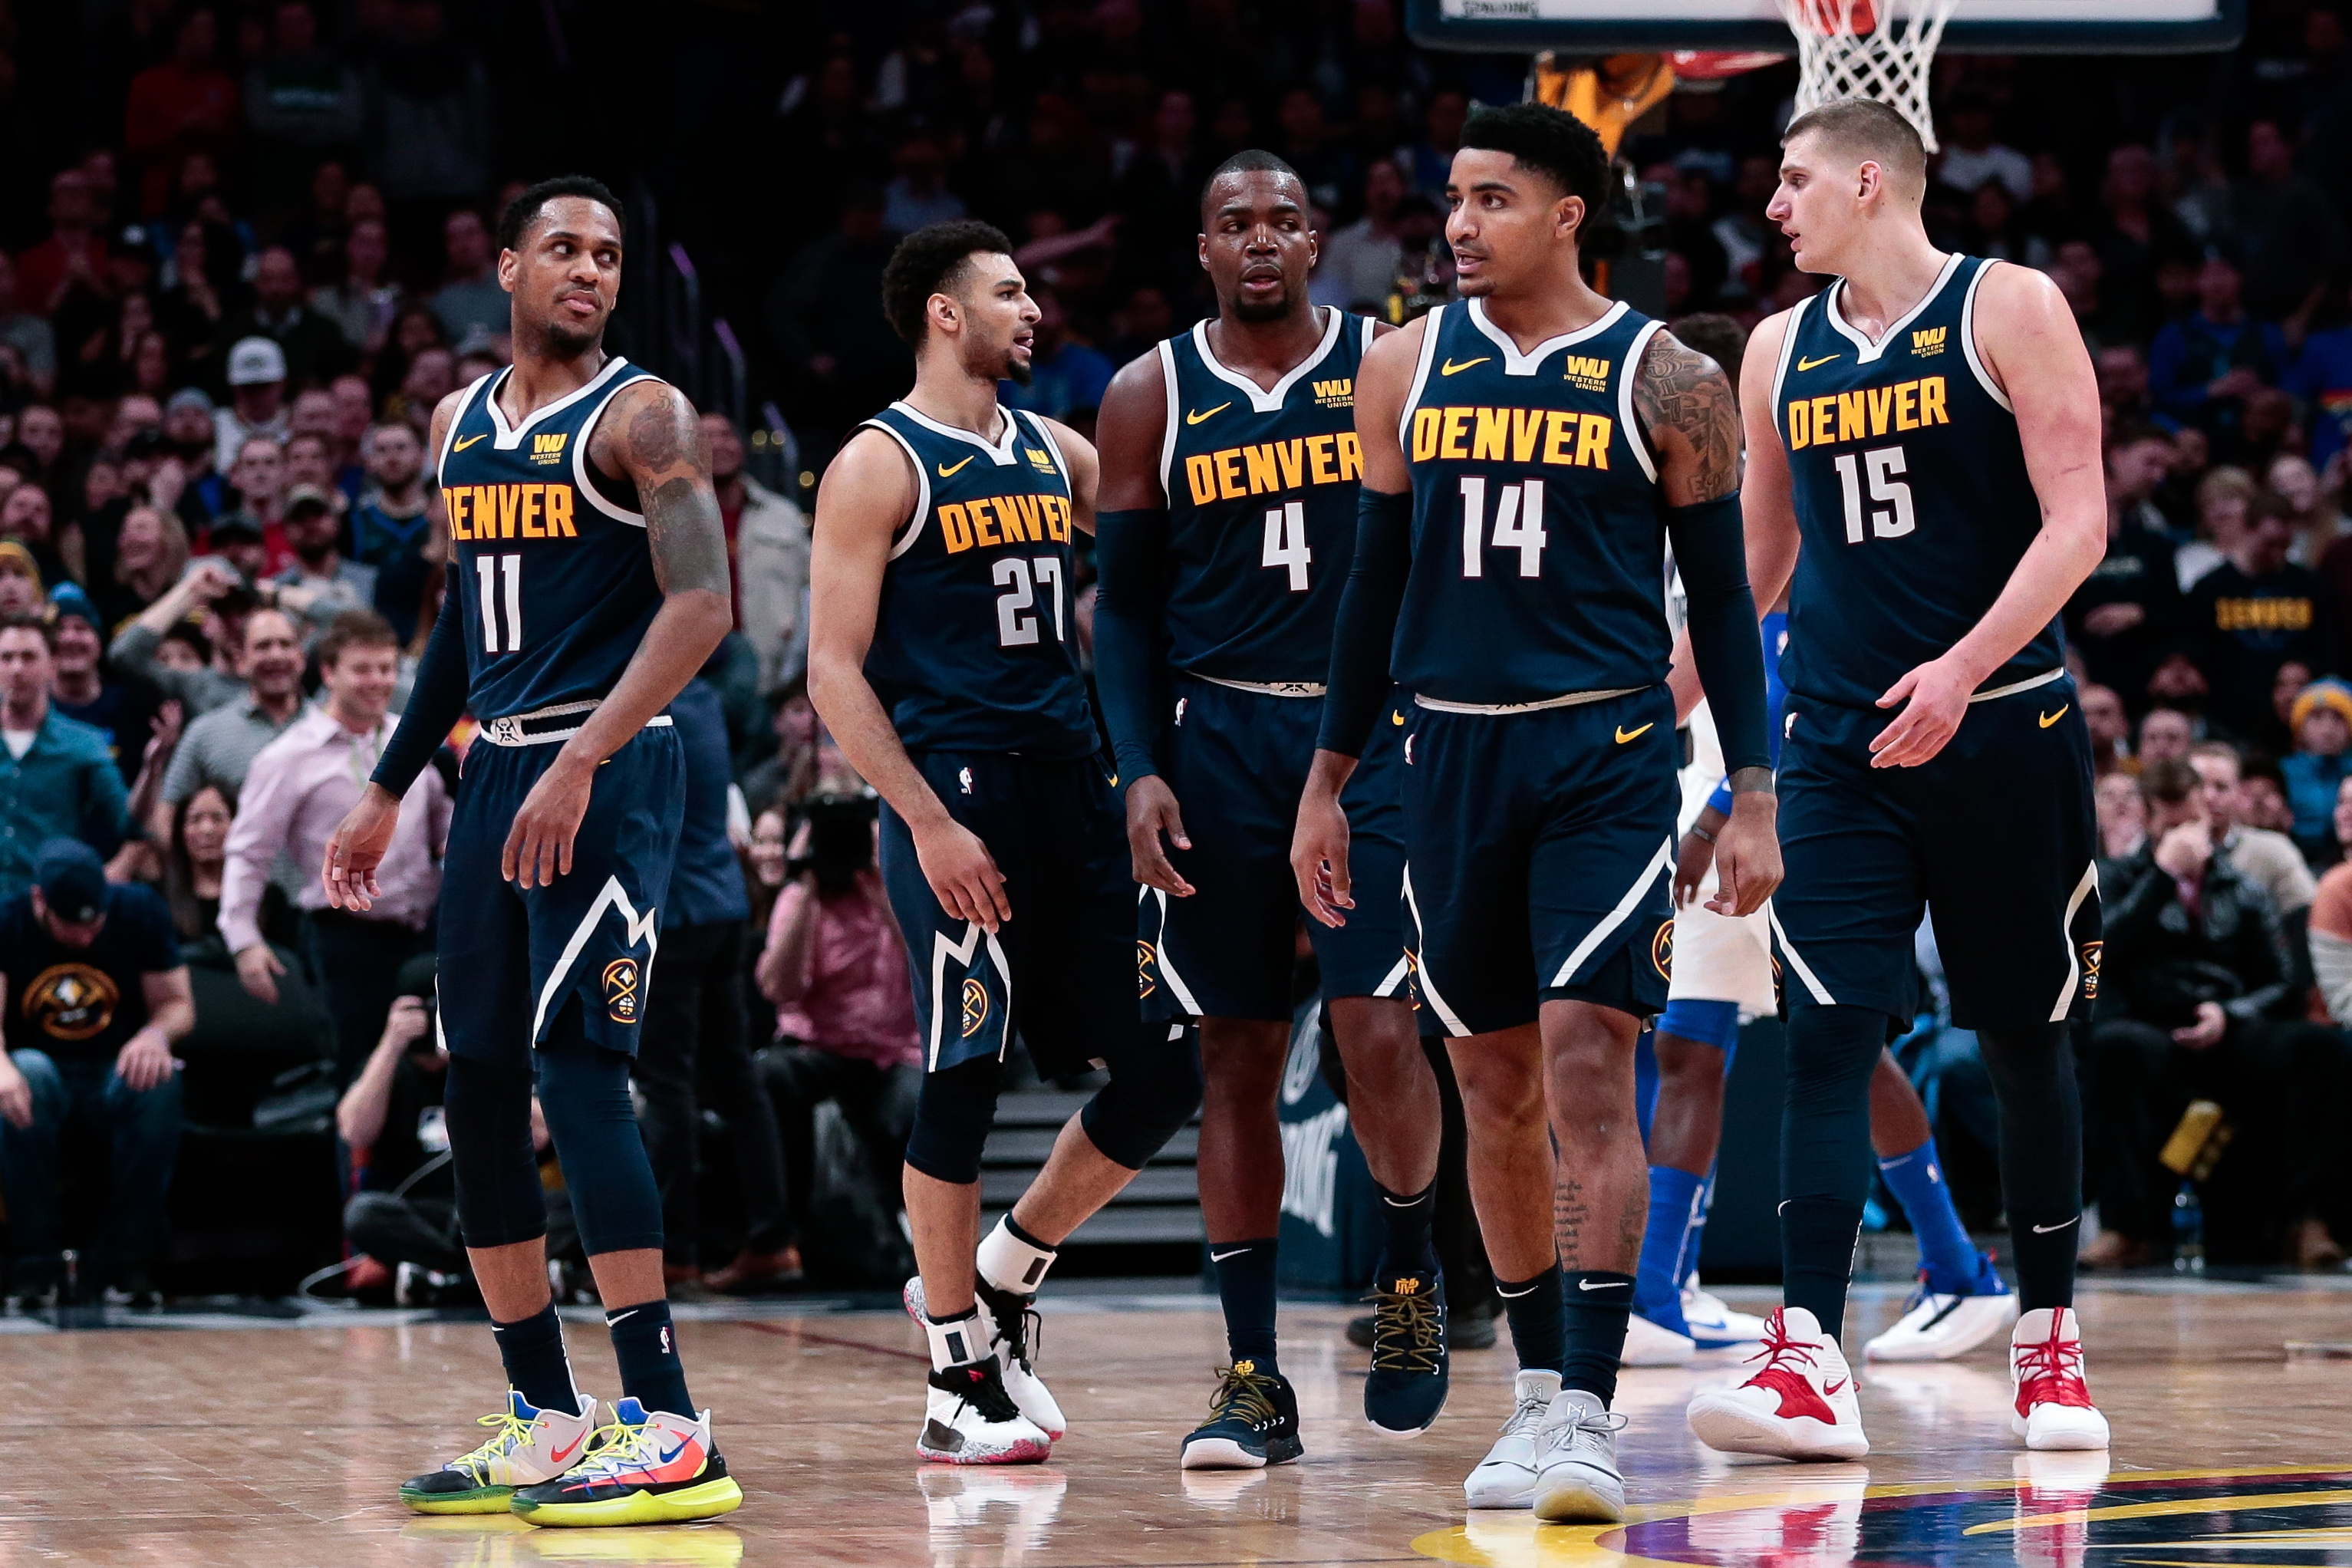 The Denver Nuggets are the NBA's anachronistic contender